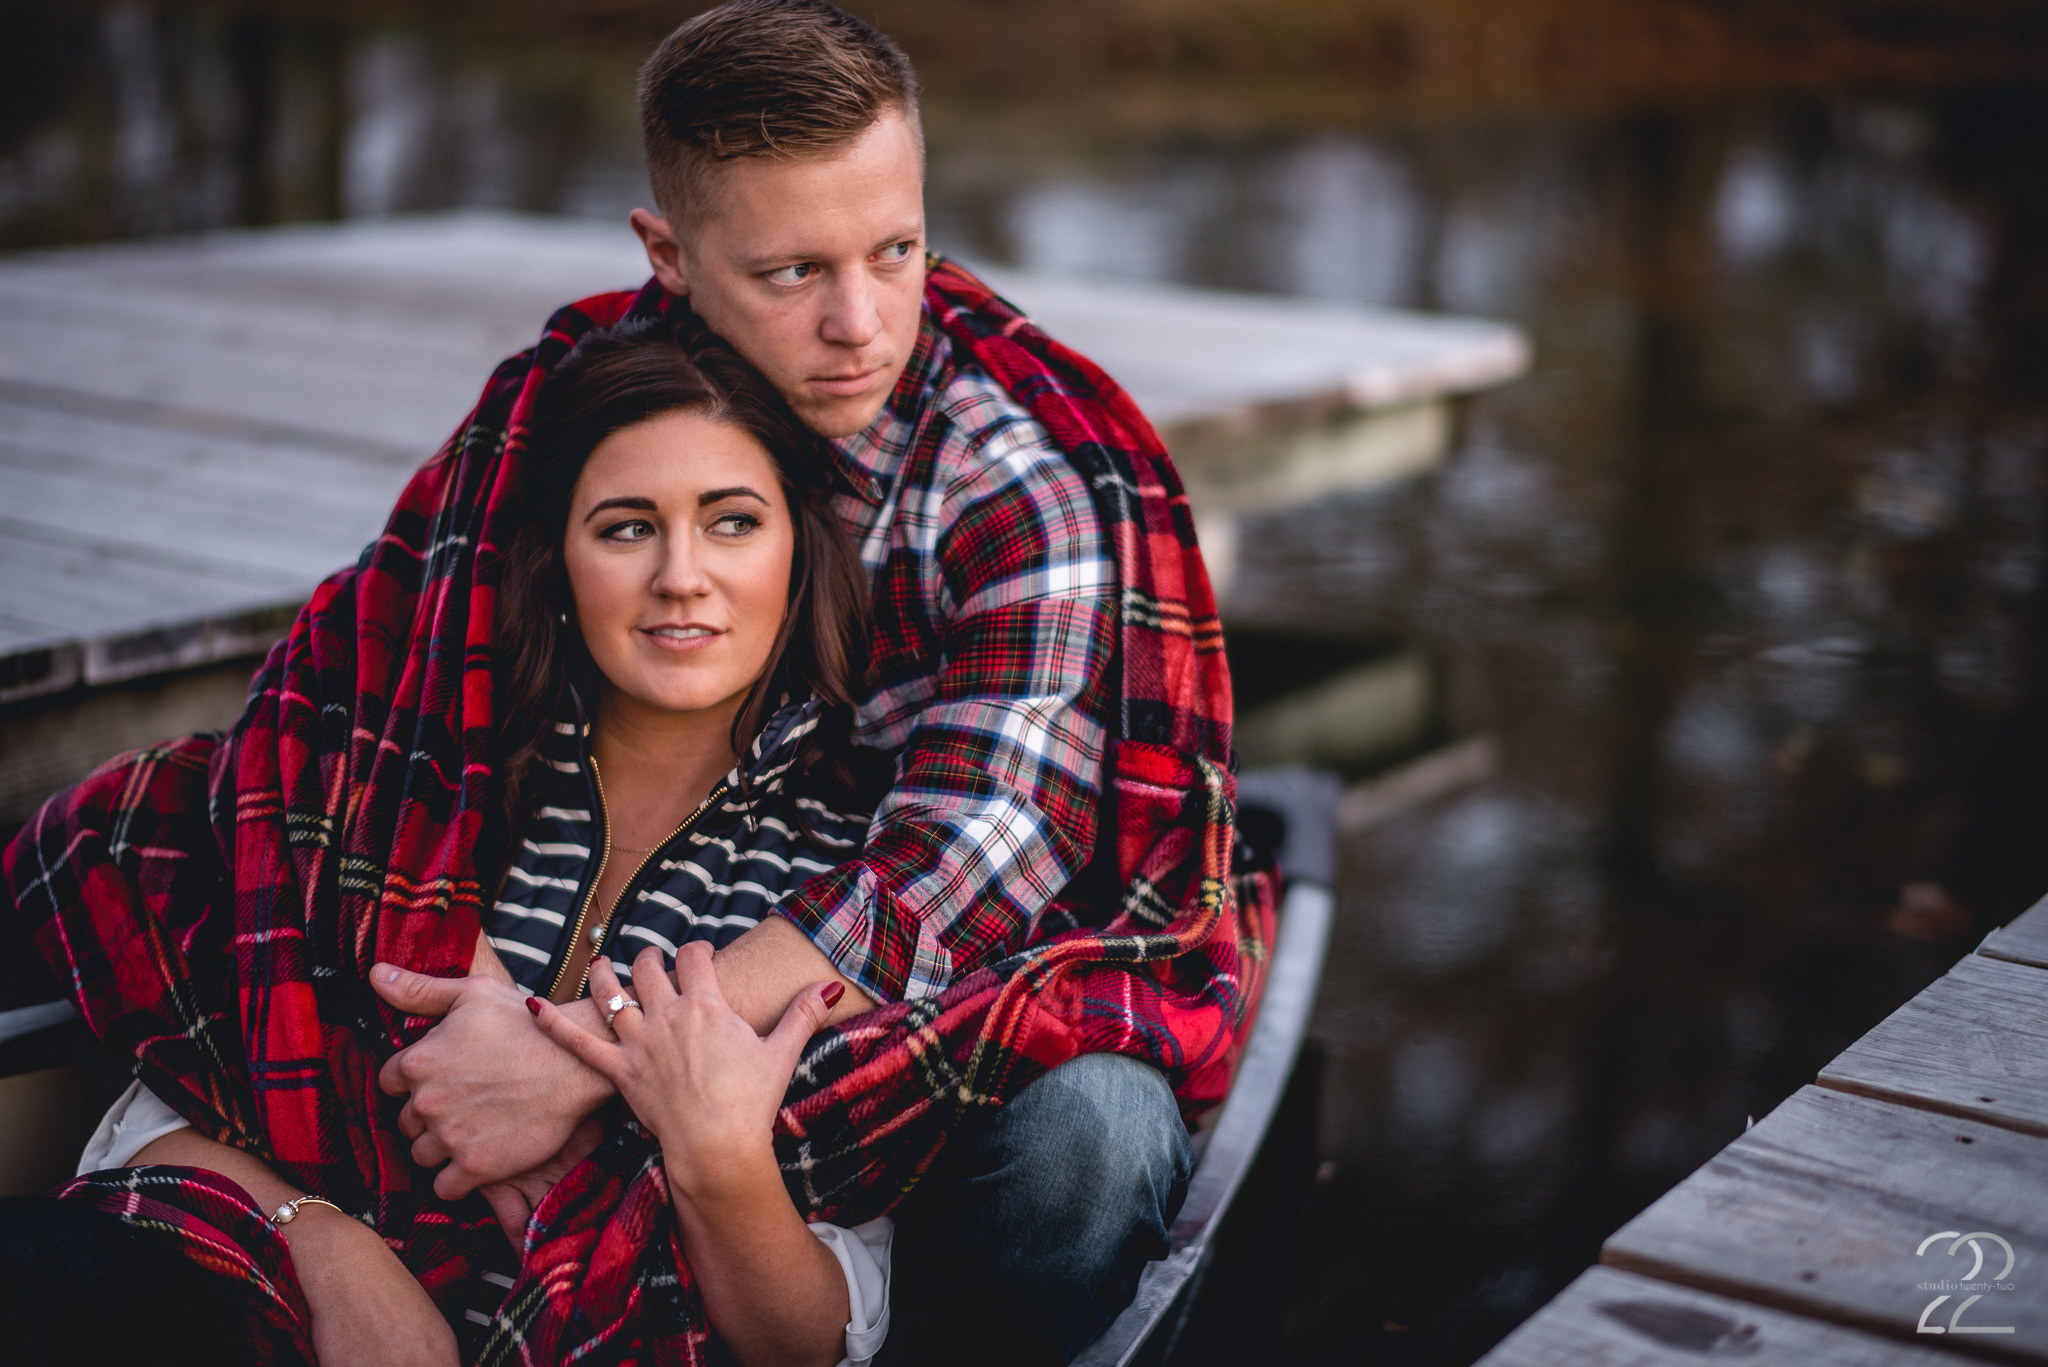 Back to those docks at Eastwood MetroPark! Mike and Ashlea brought their own canoe for their engagement photos, which was super rad! I love outdoor excursions, and when couples want to incorporate their own pieces into their engagement photos, that